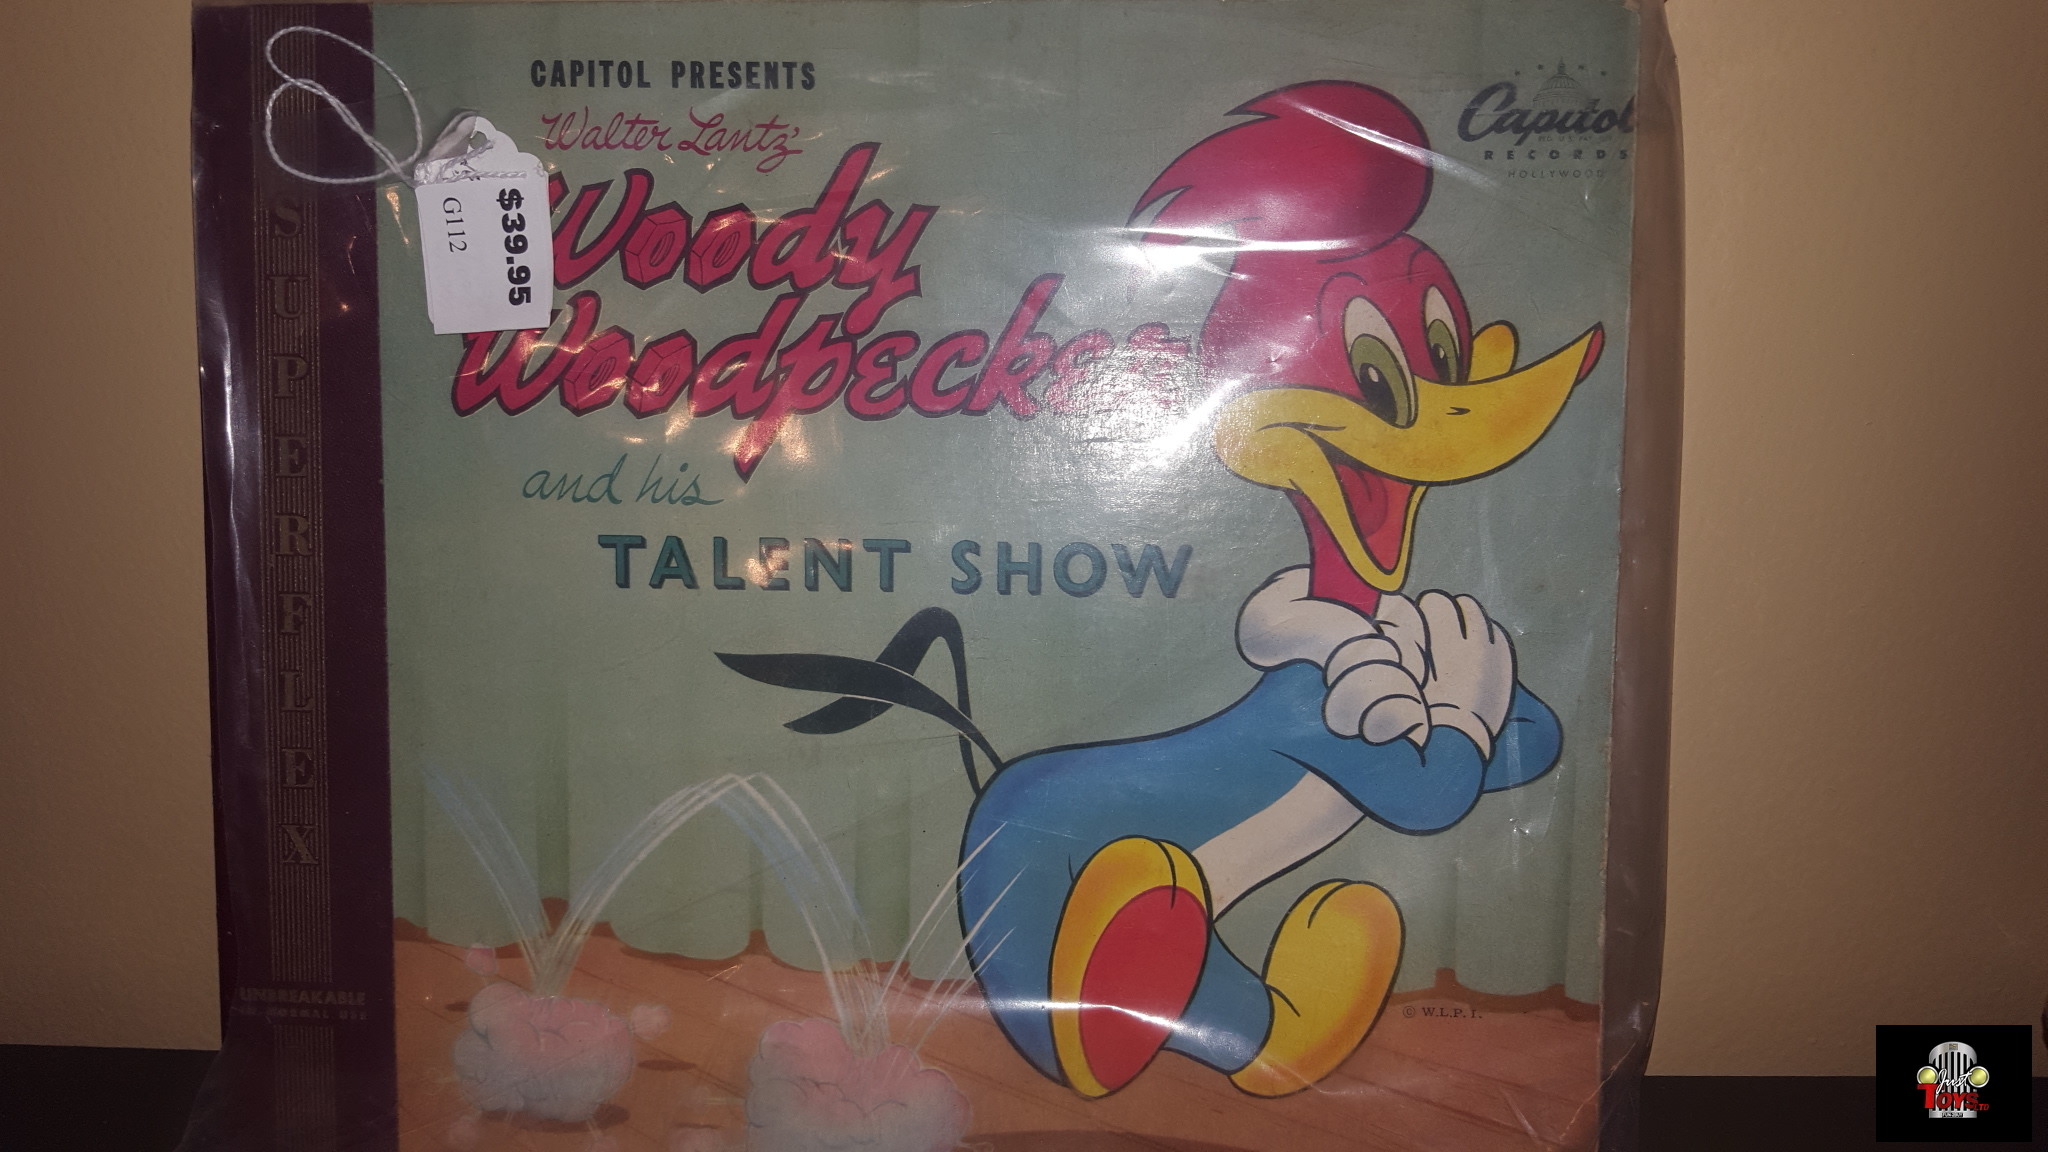 Capitol Records Woody Wood Pecker and His Talent Show